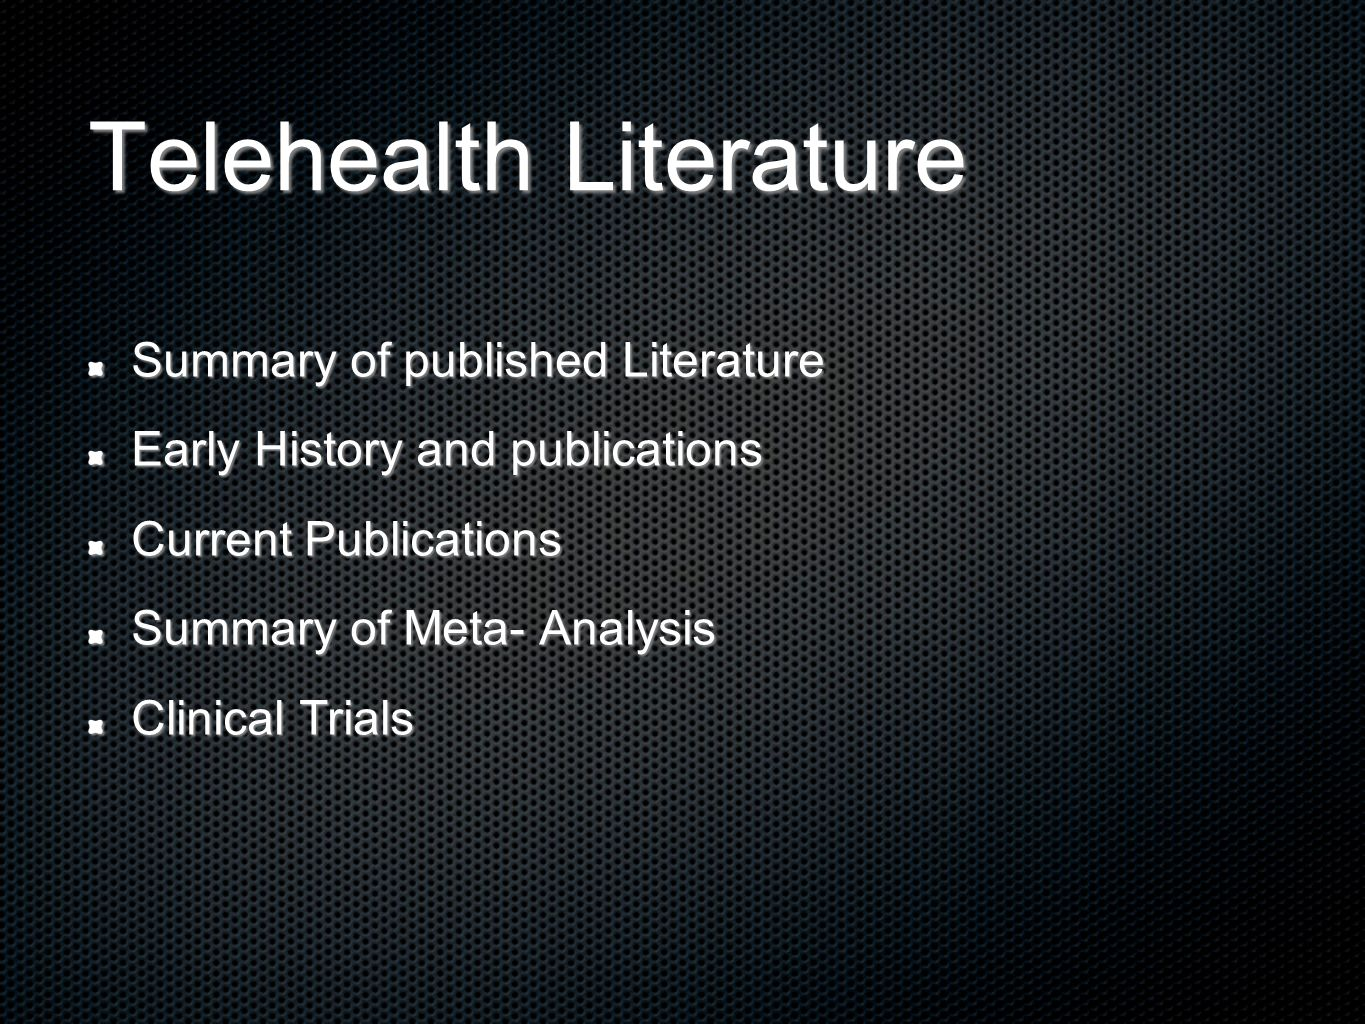 Telehealth Literature Summary of published Literature Early History and publications Current Publications Summary of Meta- Analysis Clinical Trials